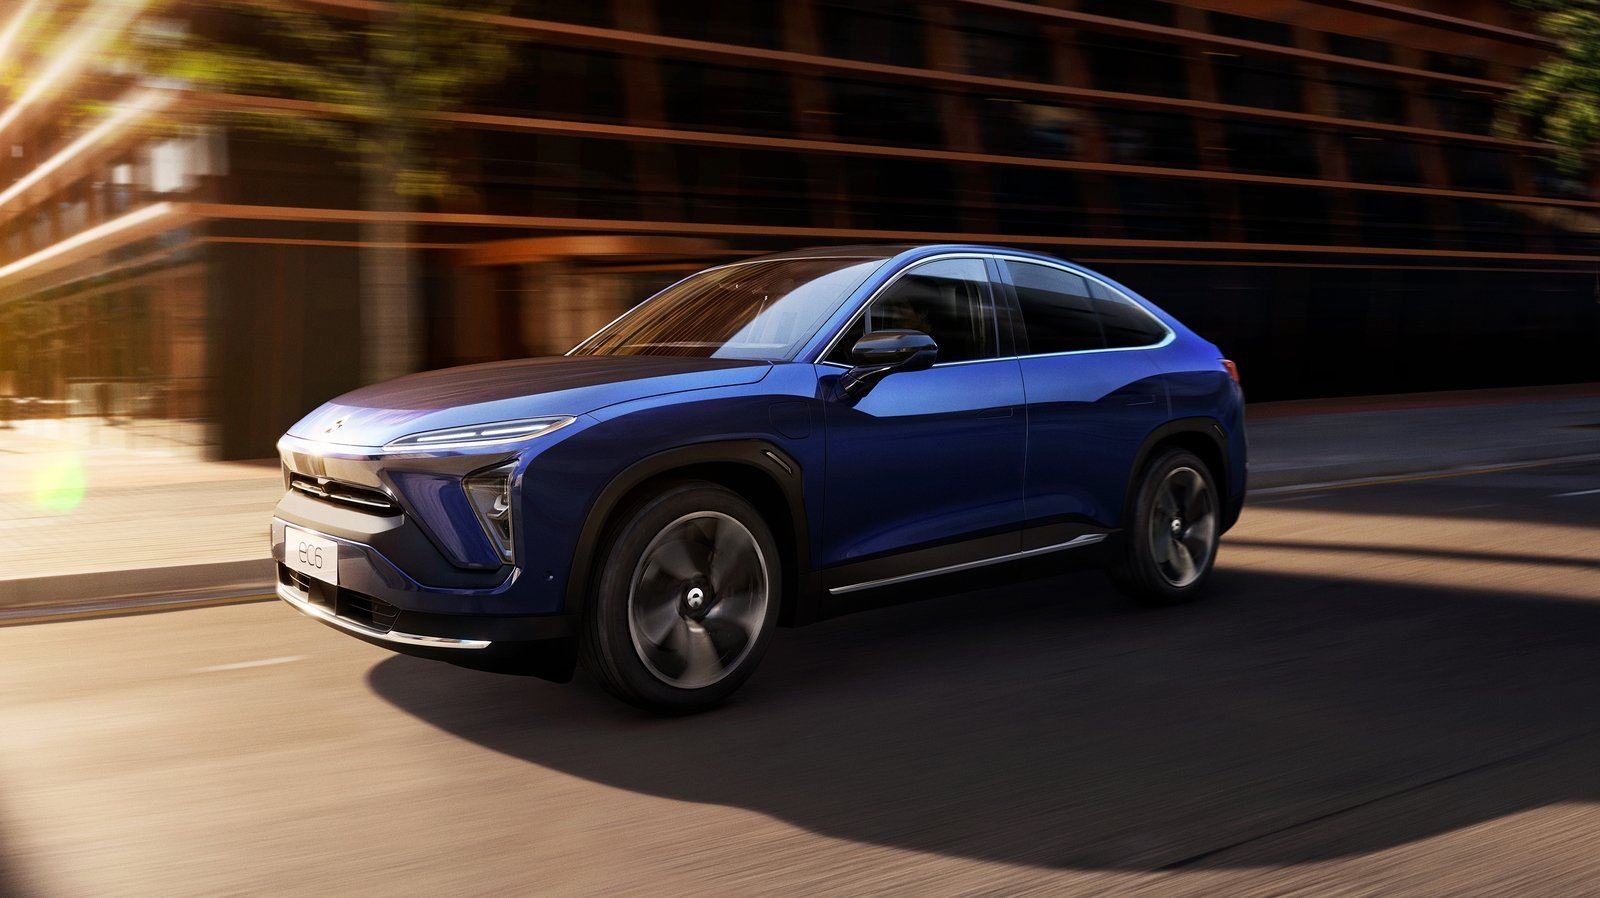 2021 Nio Ec6 Review Specifications And Images